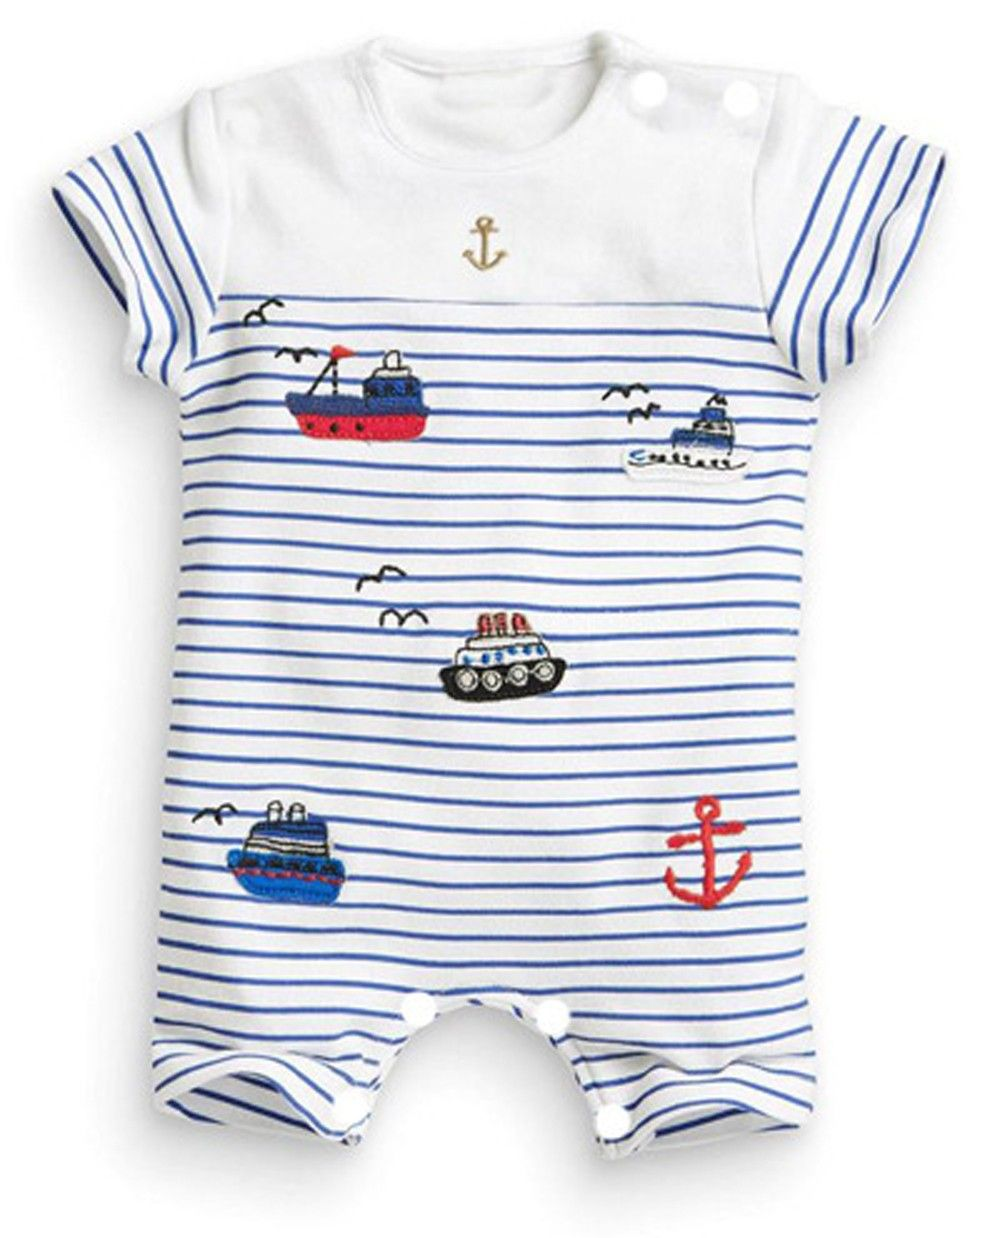 Infant Baby Boys Romper Short Sleeves Shirts Outfits Summer Jumpsuits Costumes